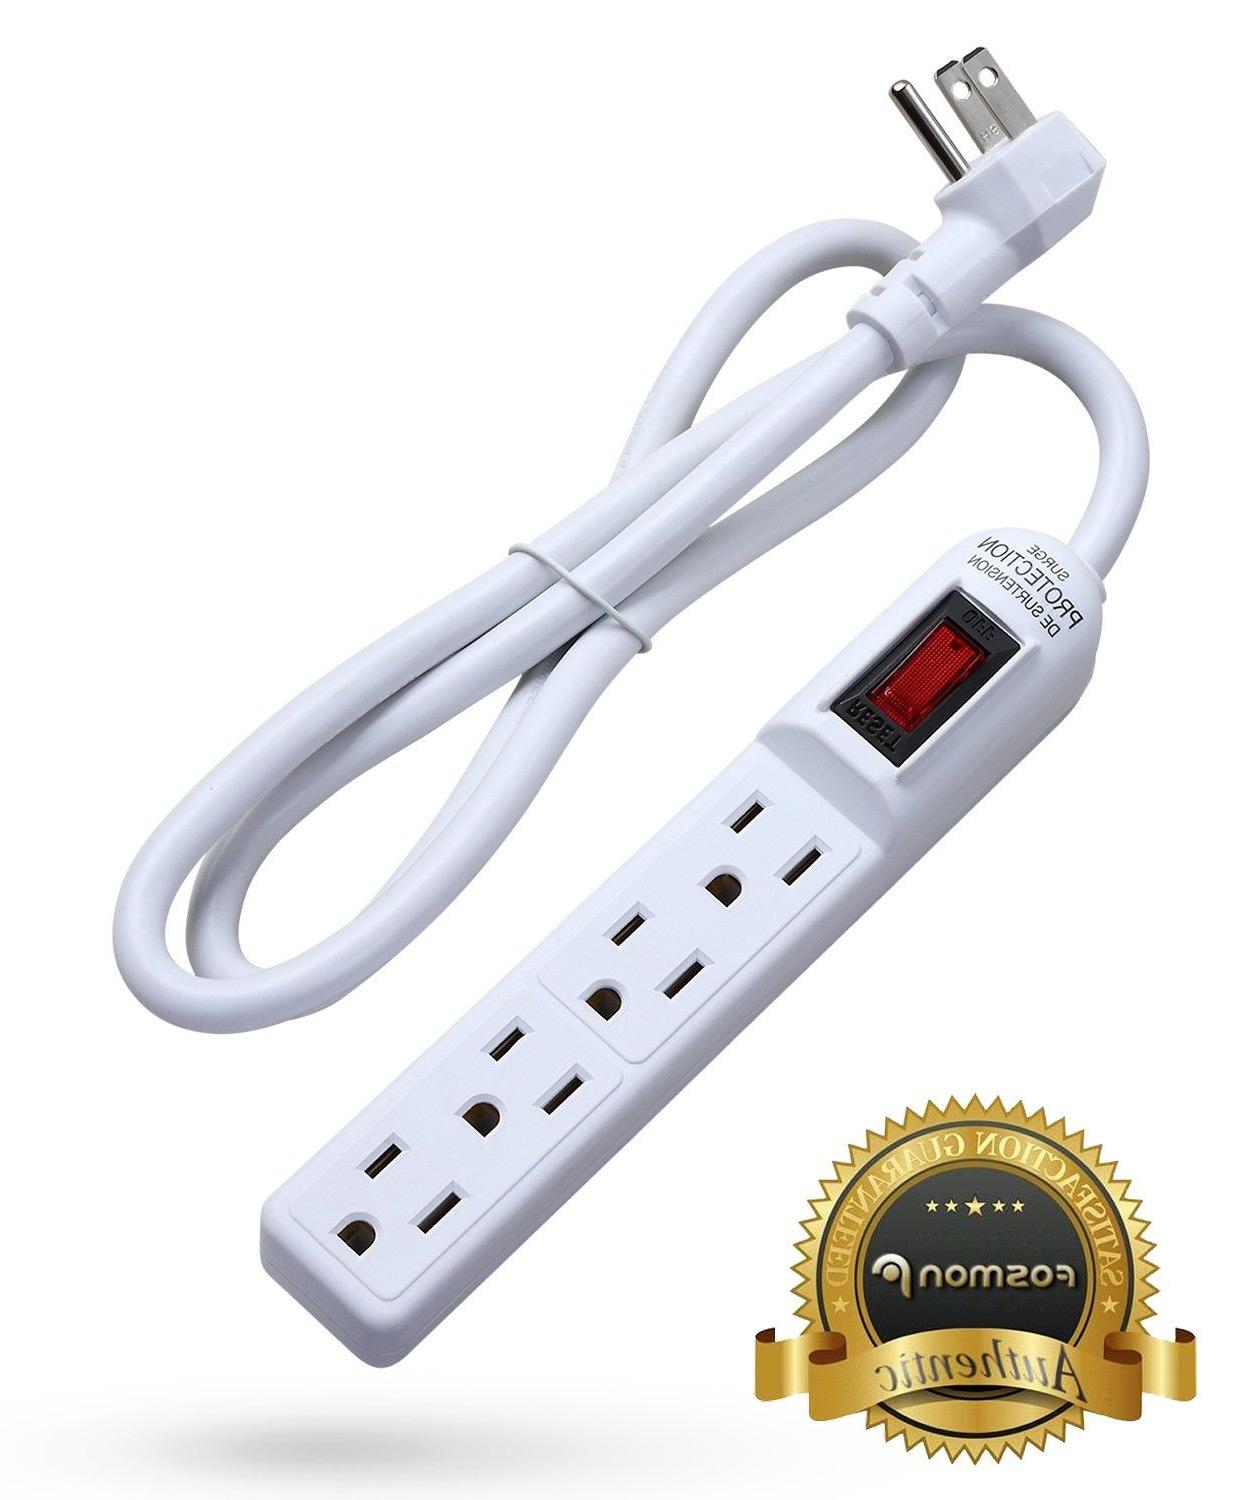 Flat Plug Cord 3Prong 4Outlet Surge Protector 3FT